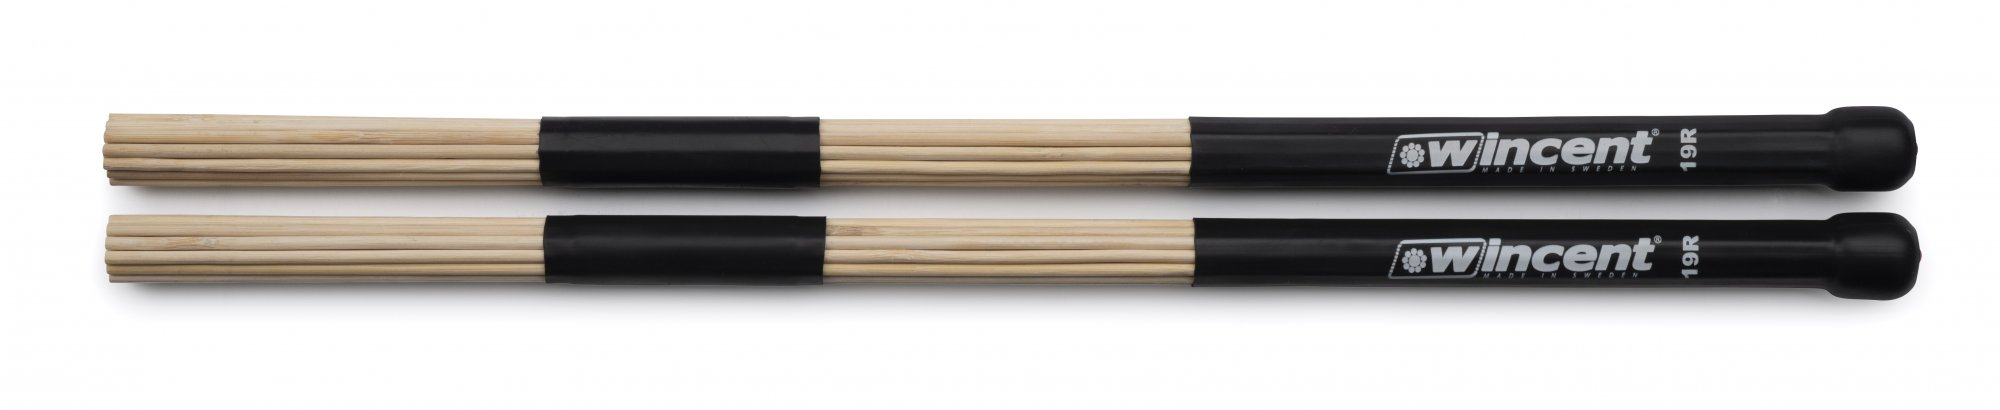 Wincent W19R Bamboo ClusterSticks